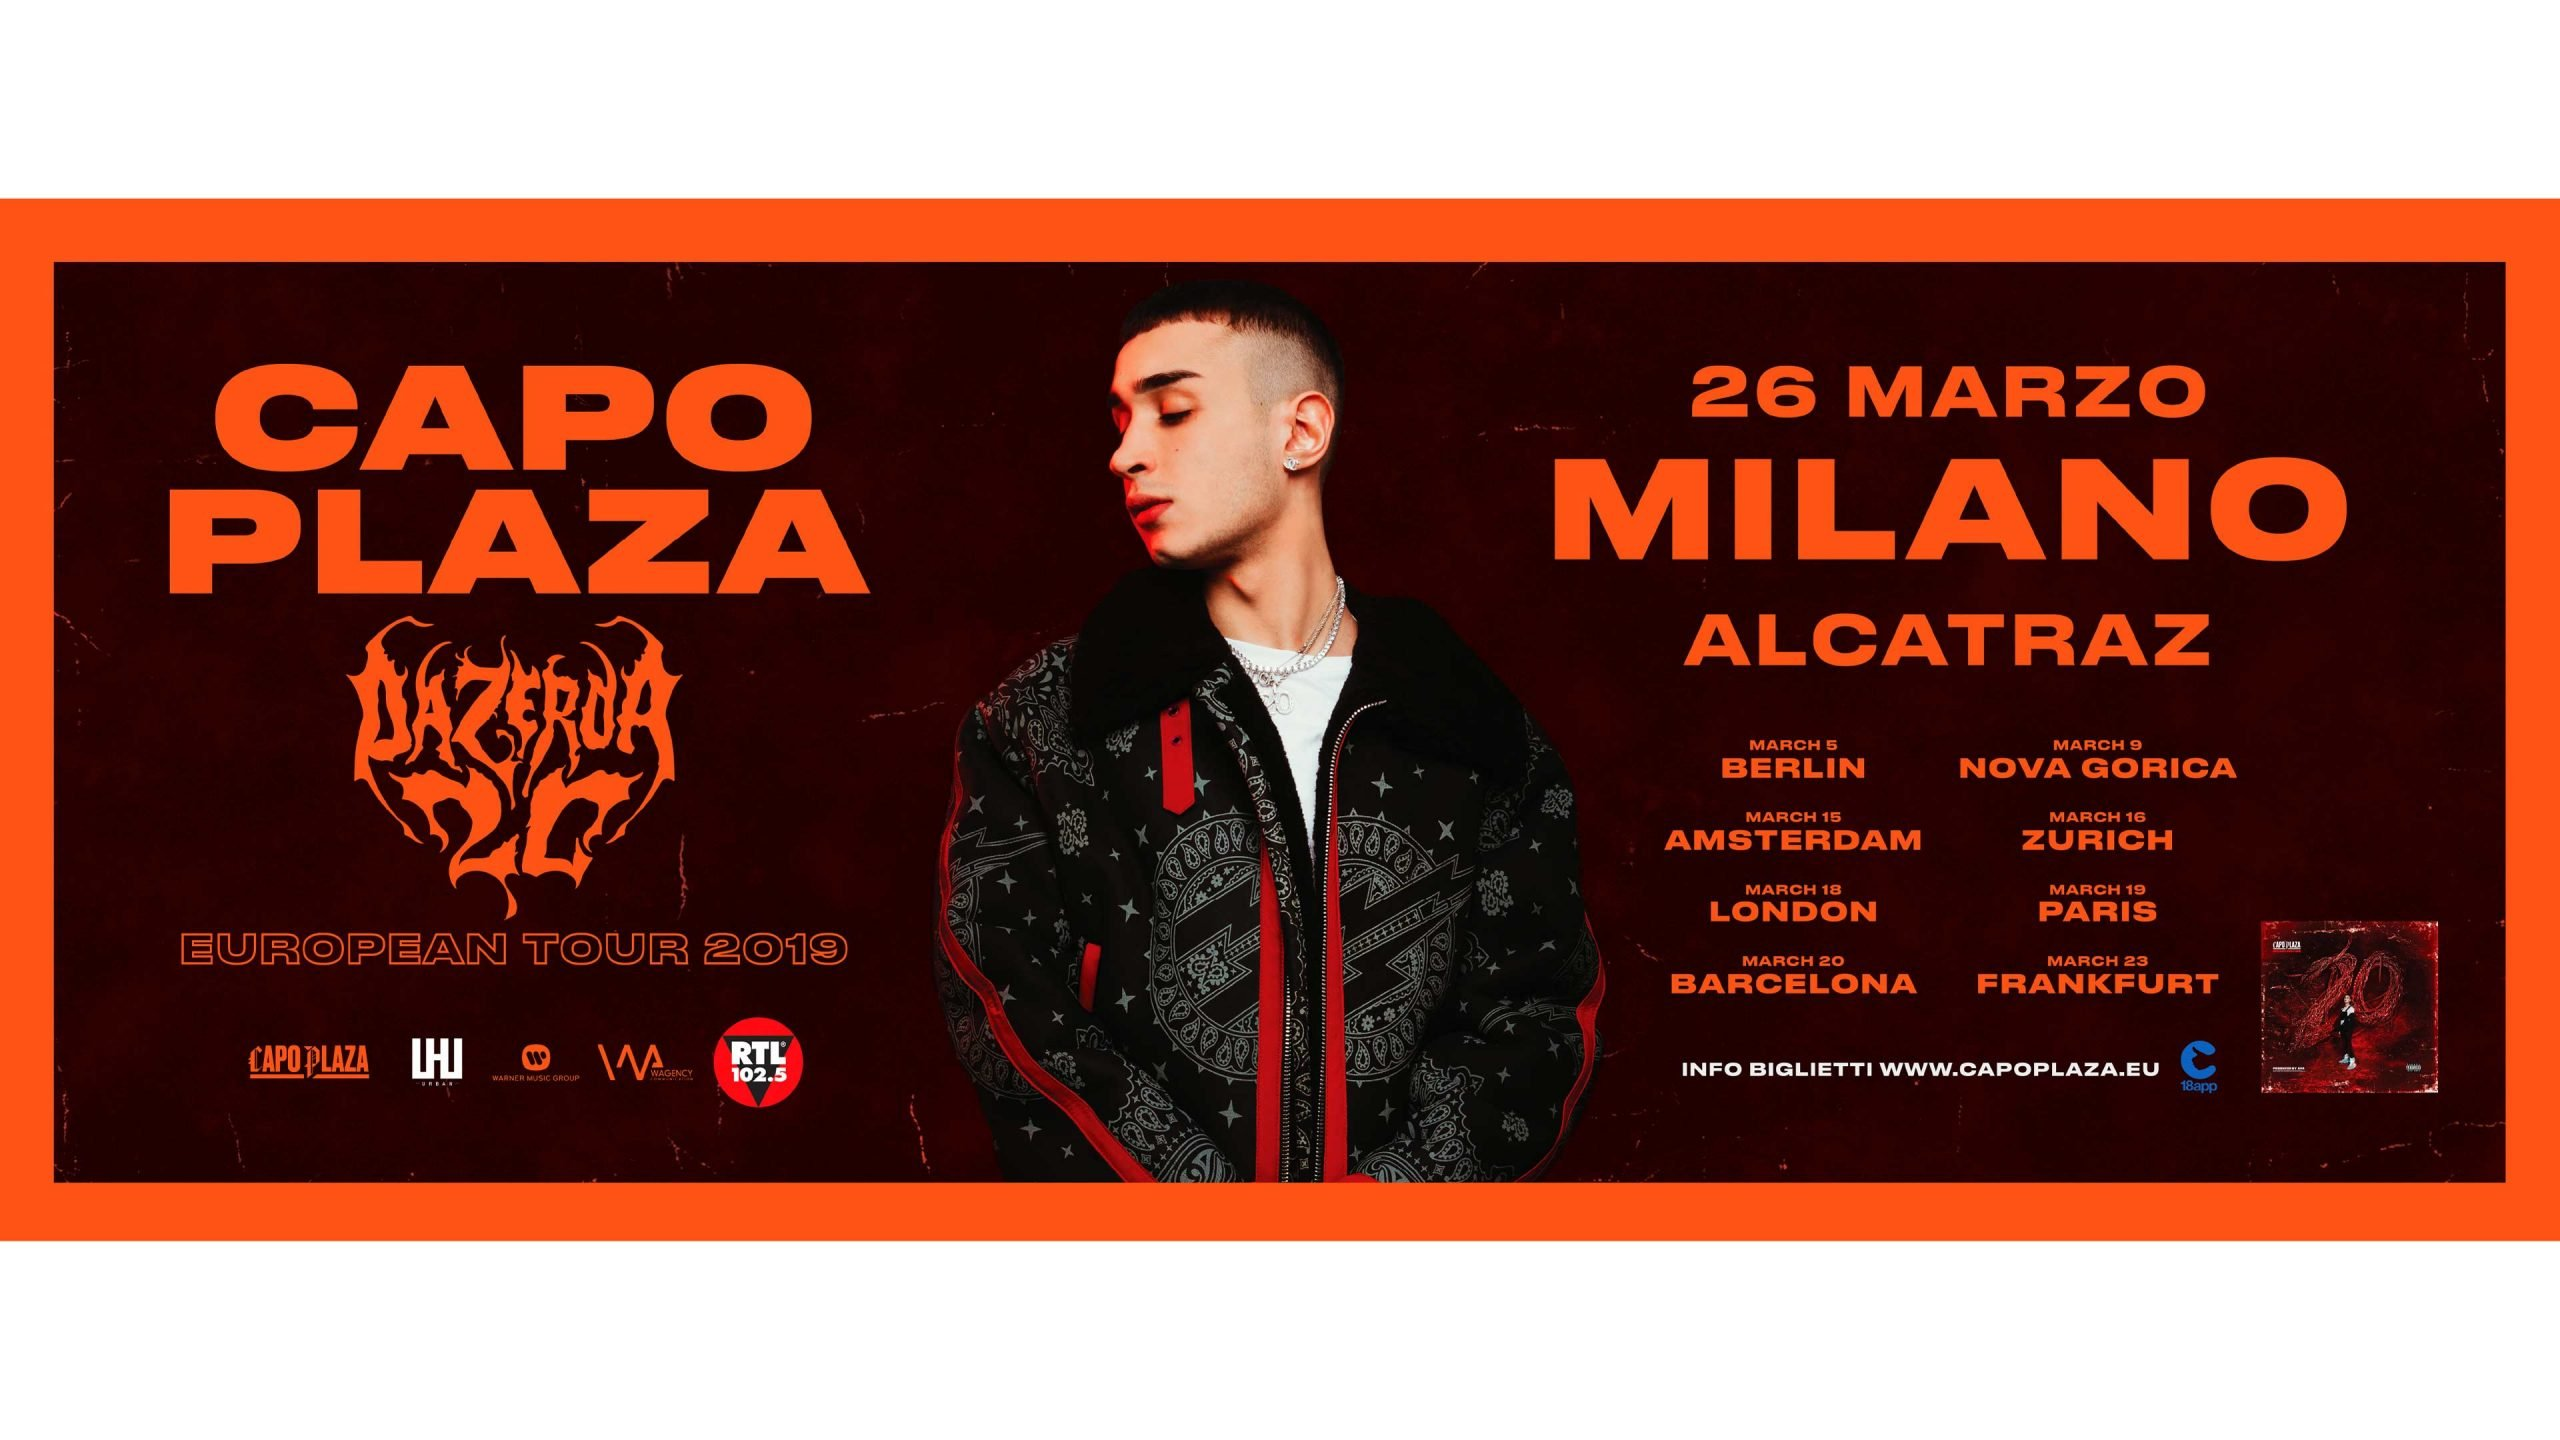 CAPO-PLAZA-TOUR-ART-DIRECTION-poster-02